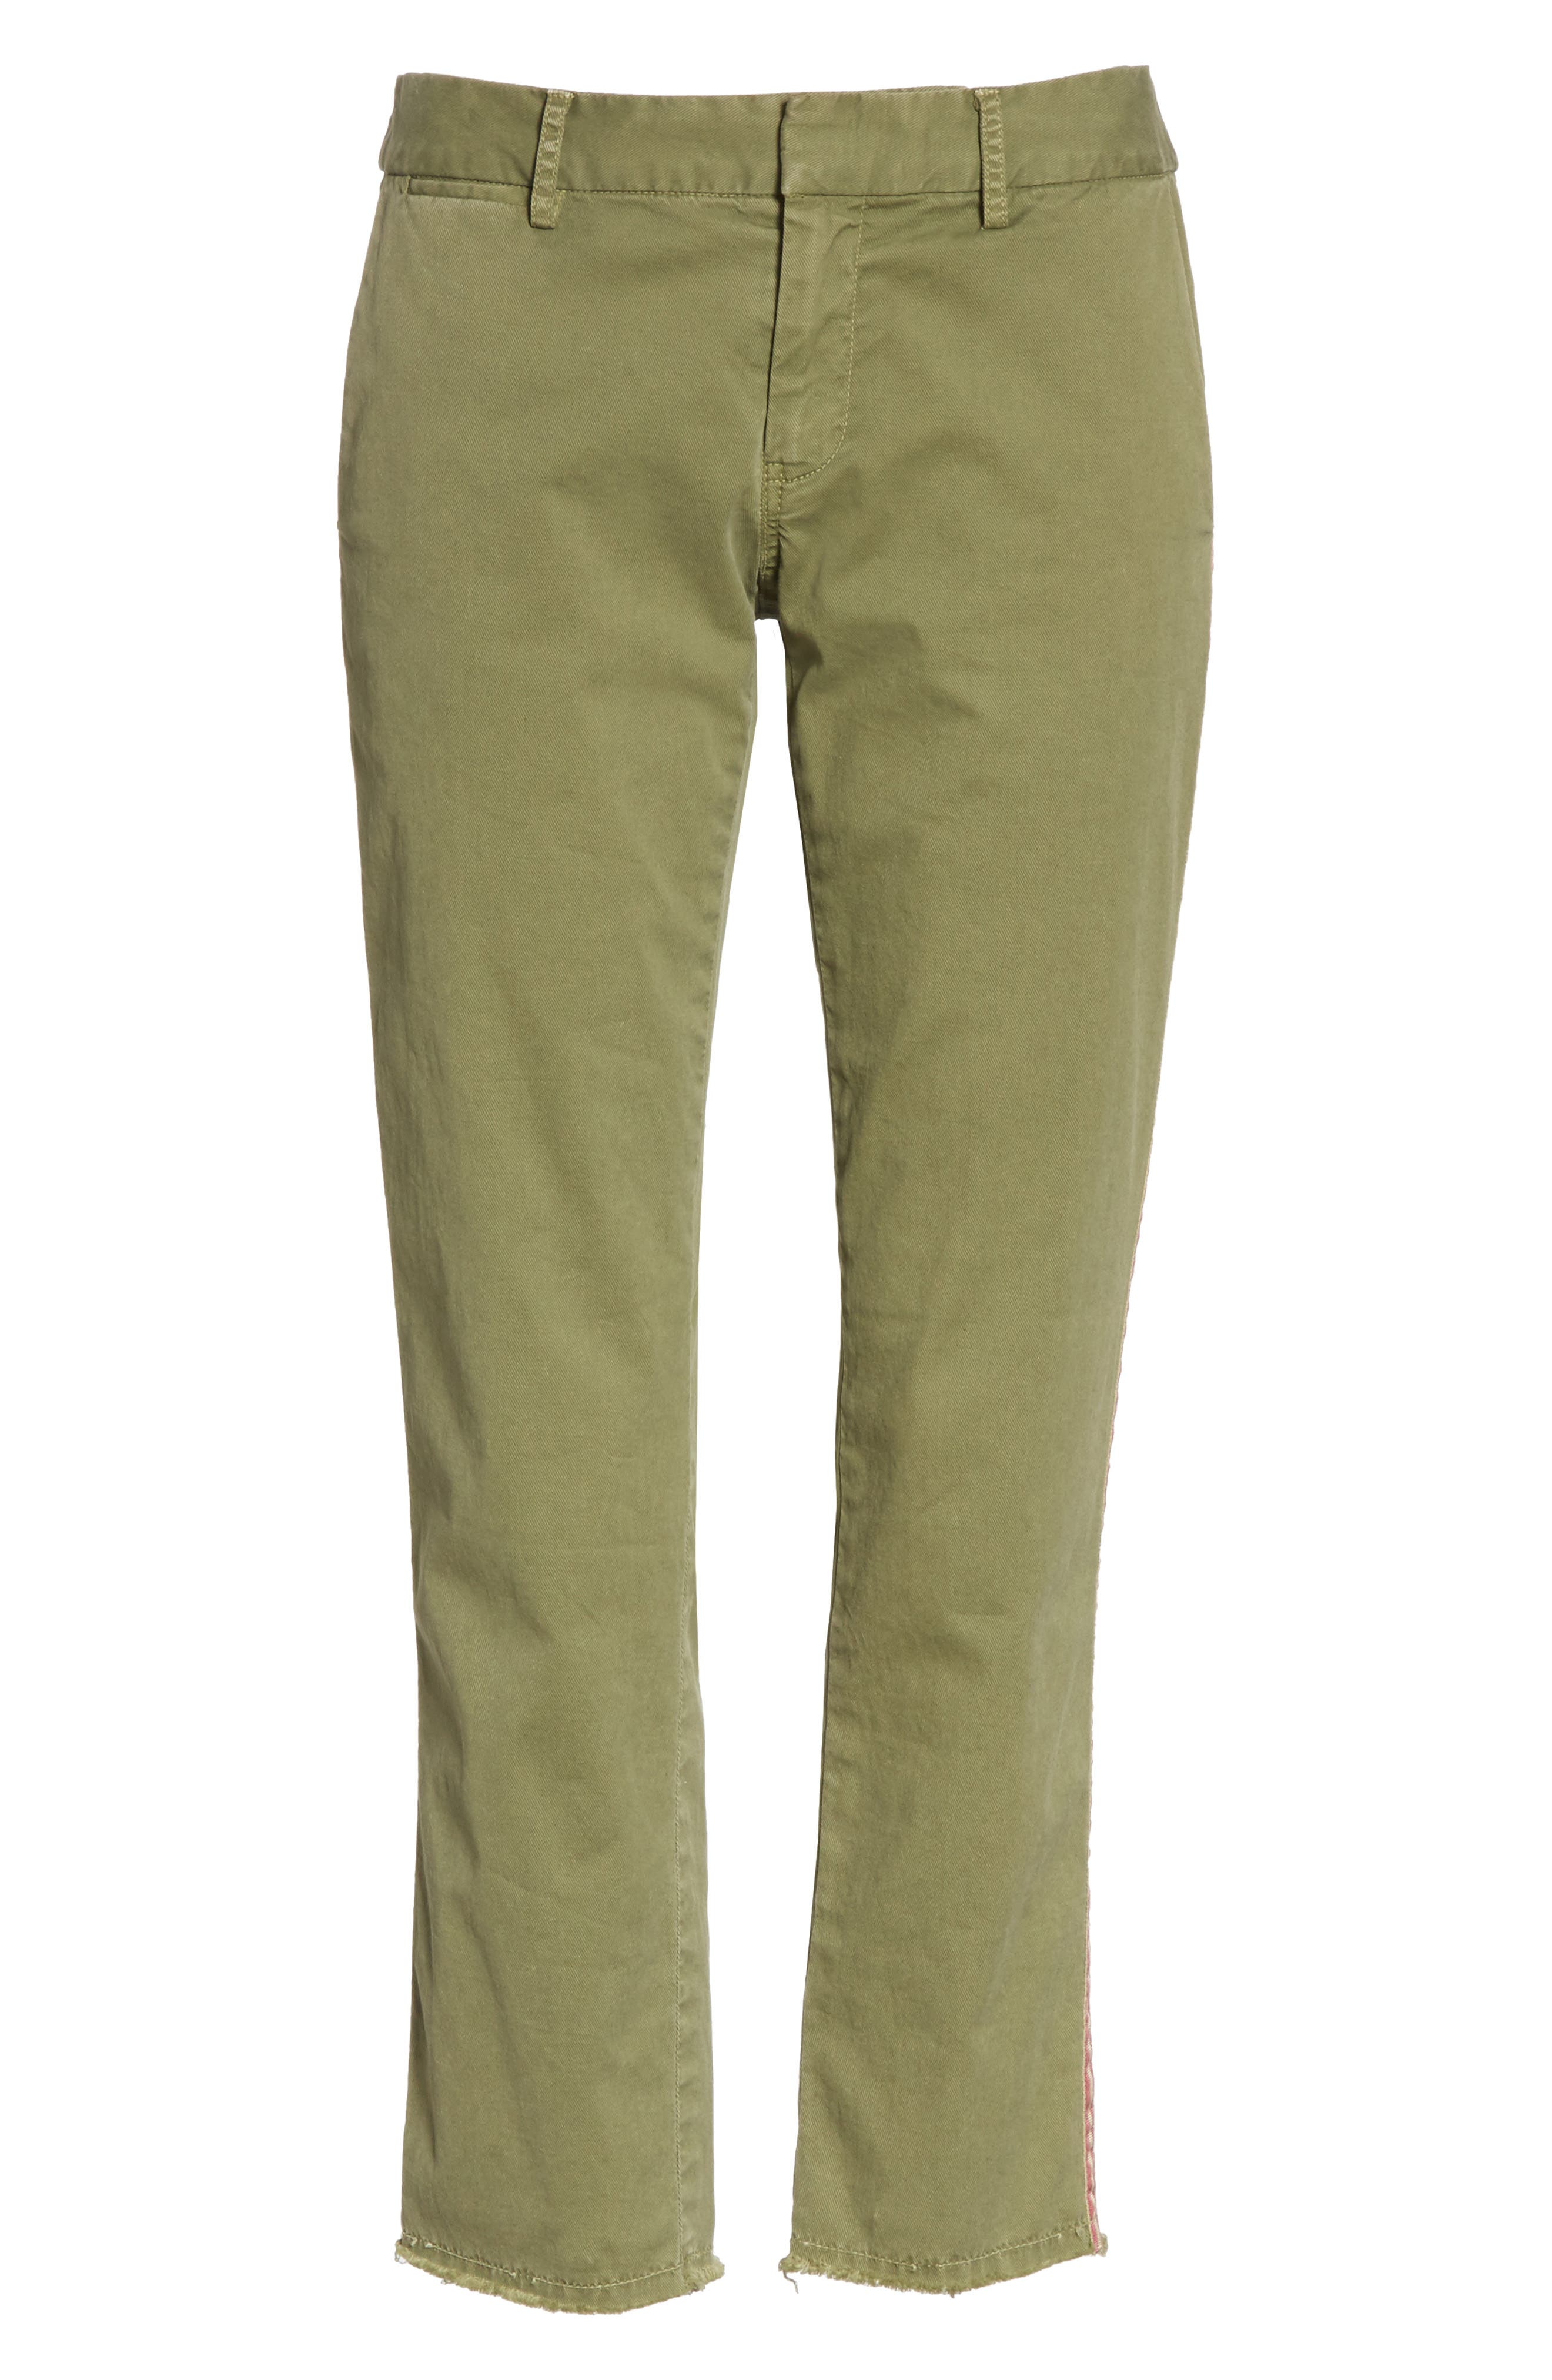 East Hampton Stretch Cotton Twill Crop Pants,                             Alternate thumbnail 6, color,                             ARMY GREEN